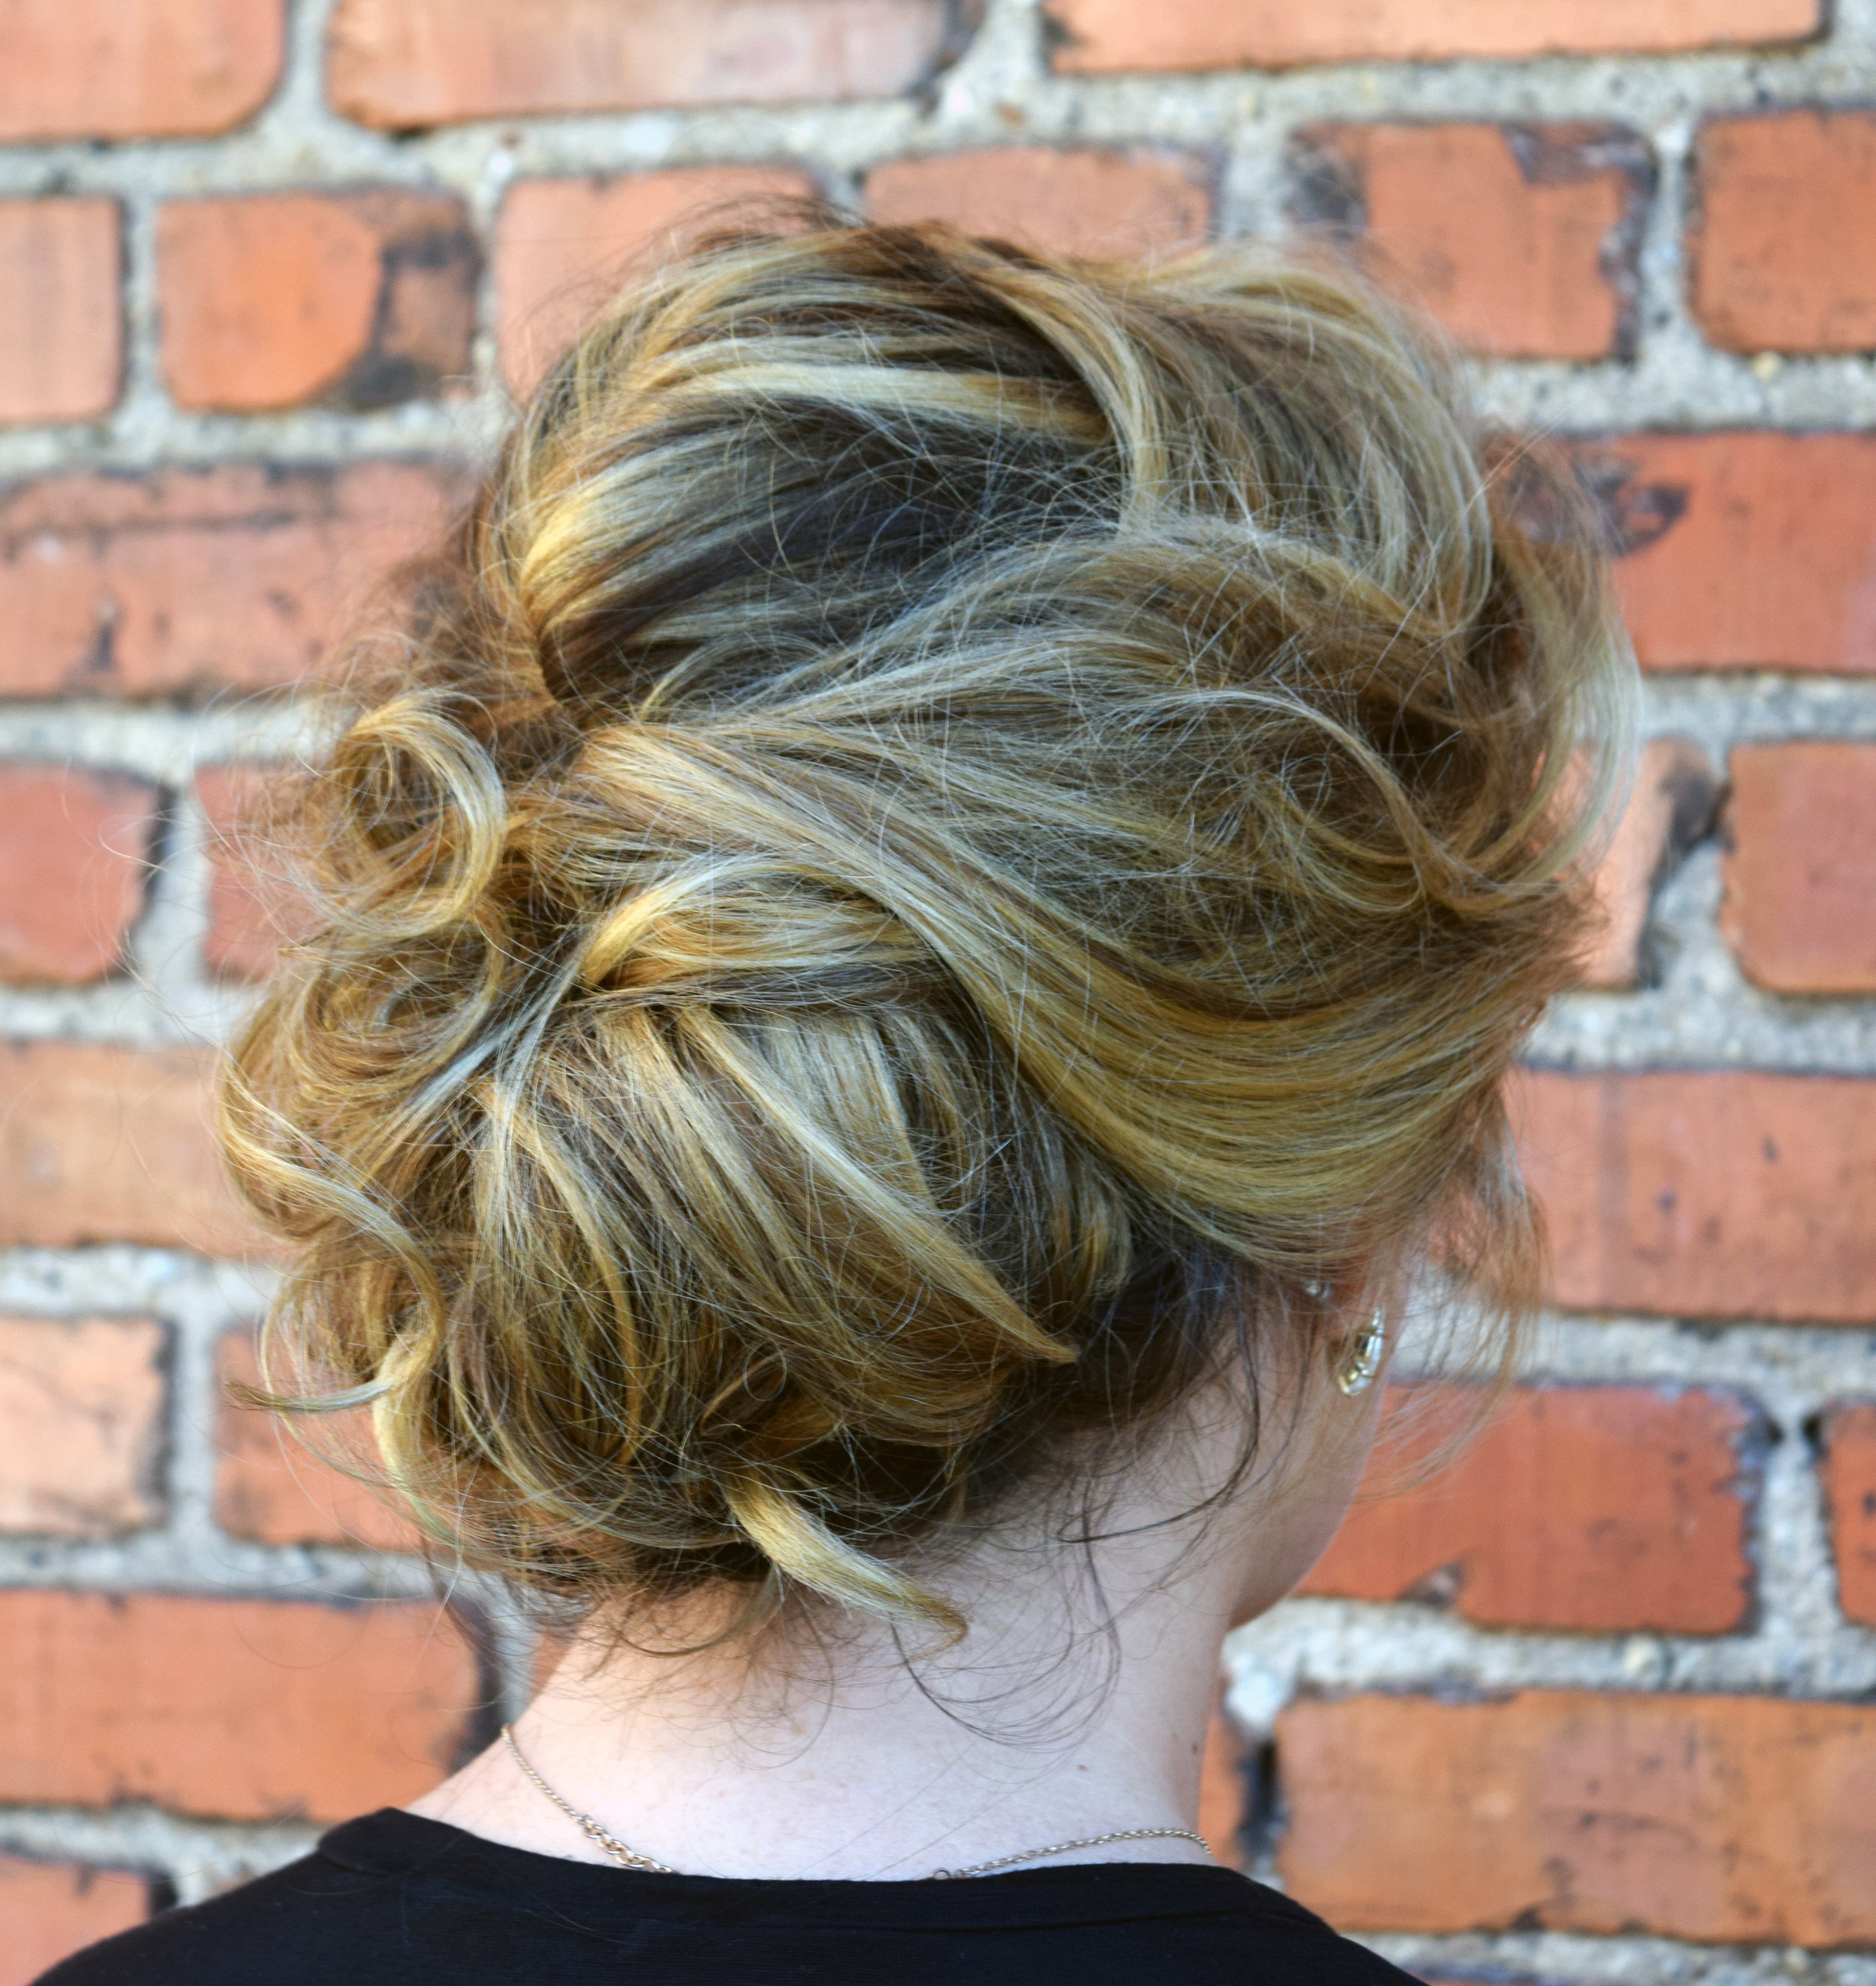 Formal Updo Hair Style at Alter EGO Blow Dry Bar.